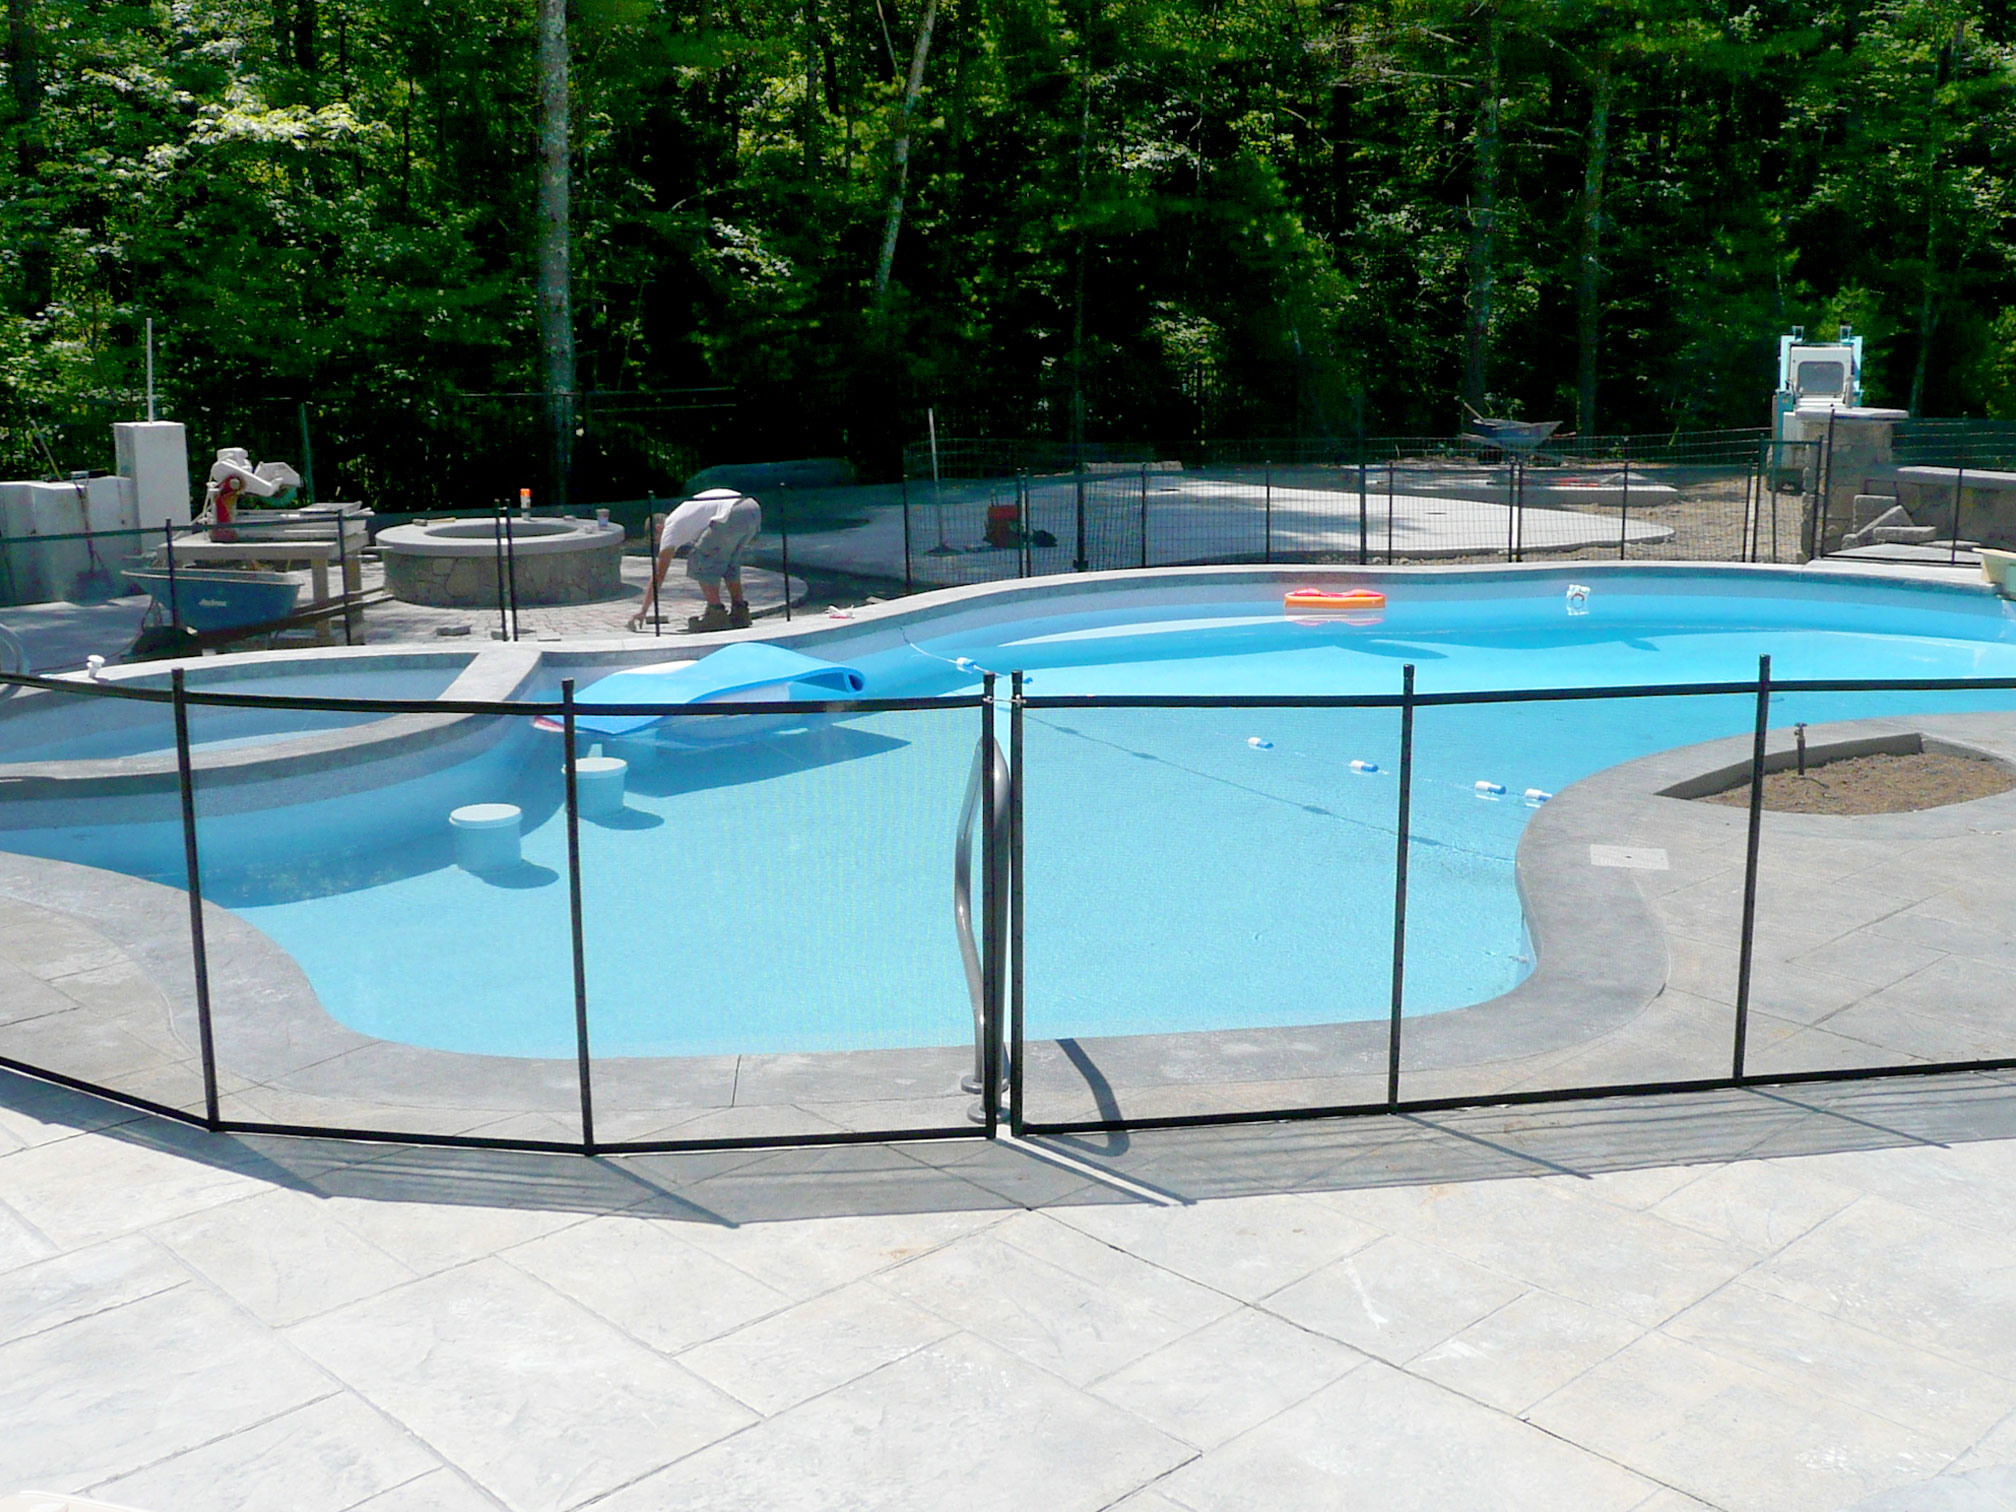 Pool Fence Installations For New England Families Protect